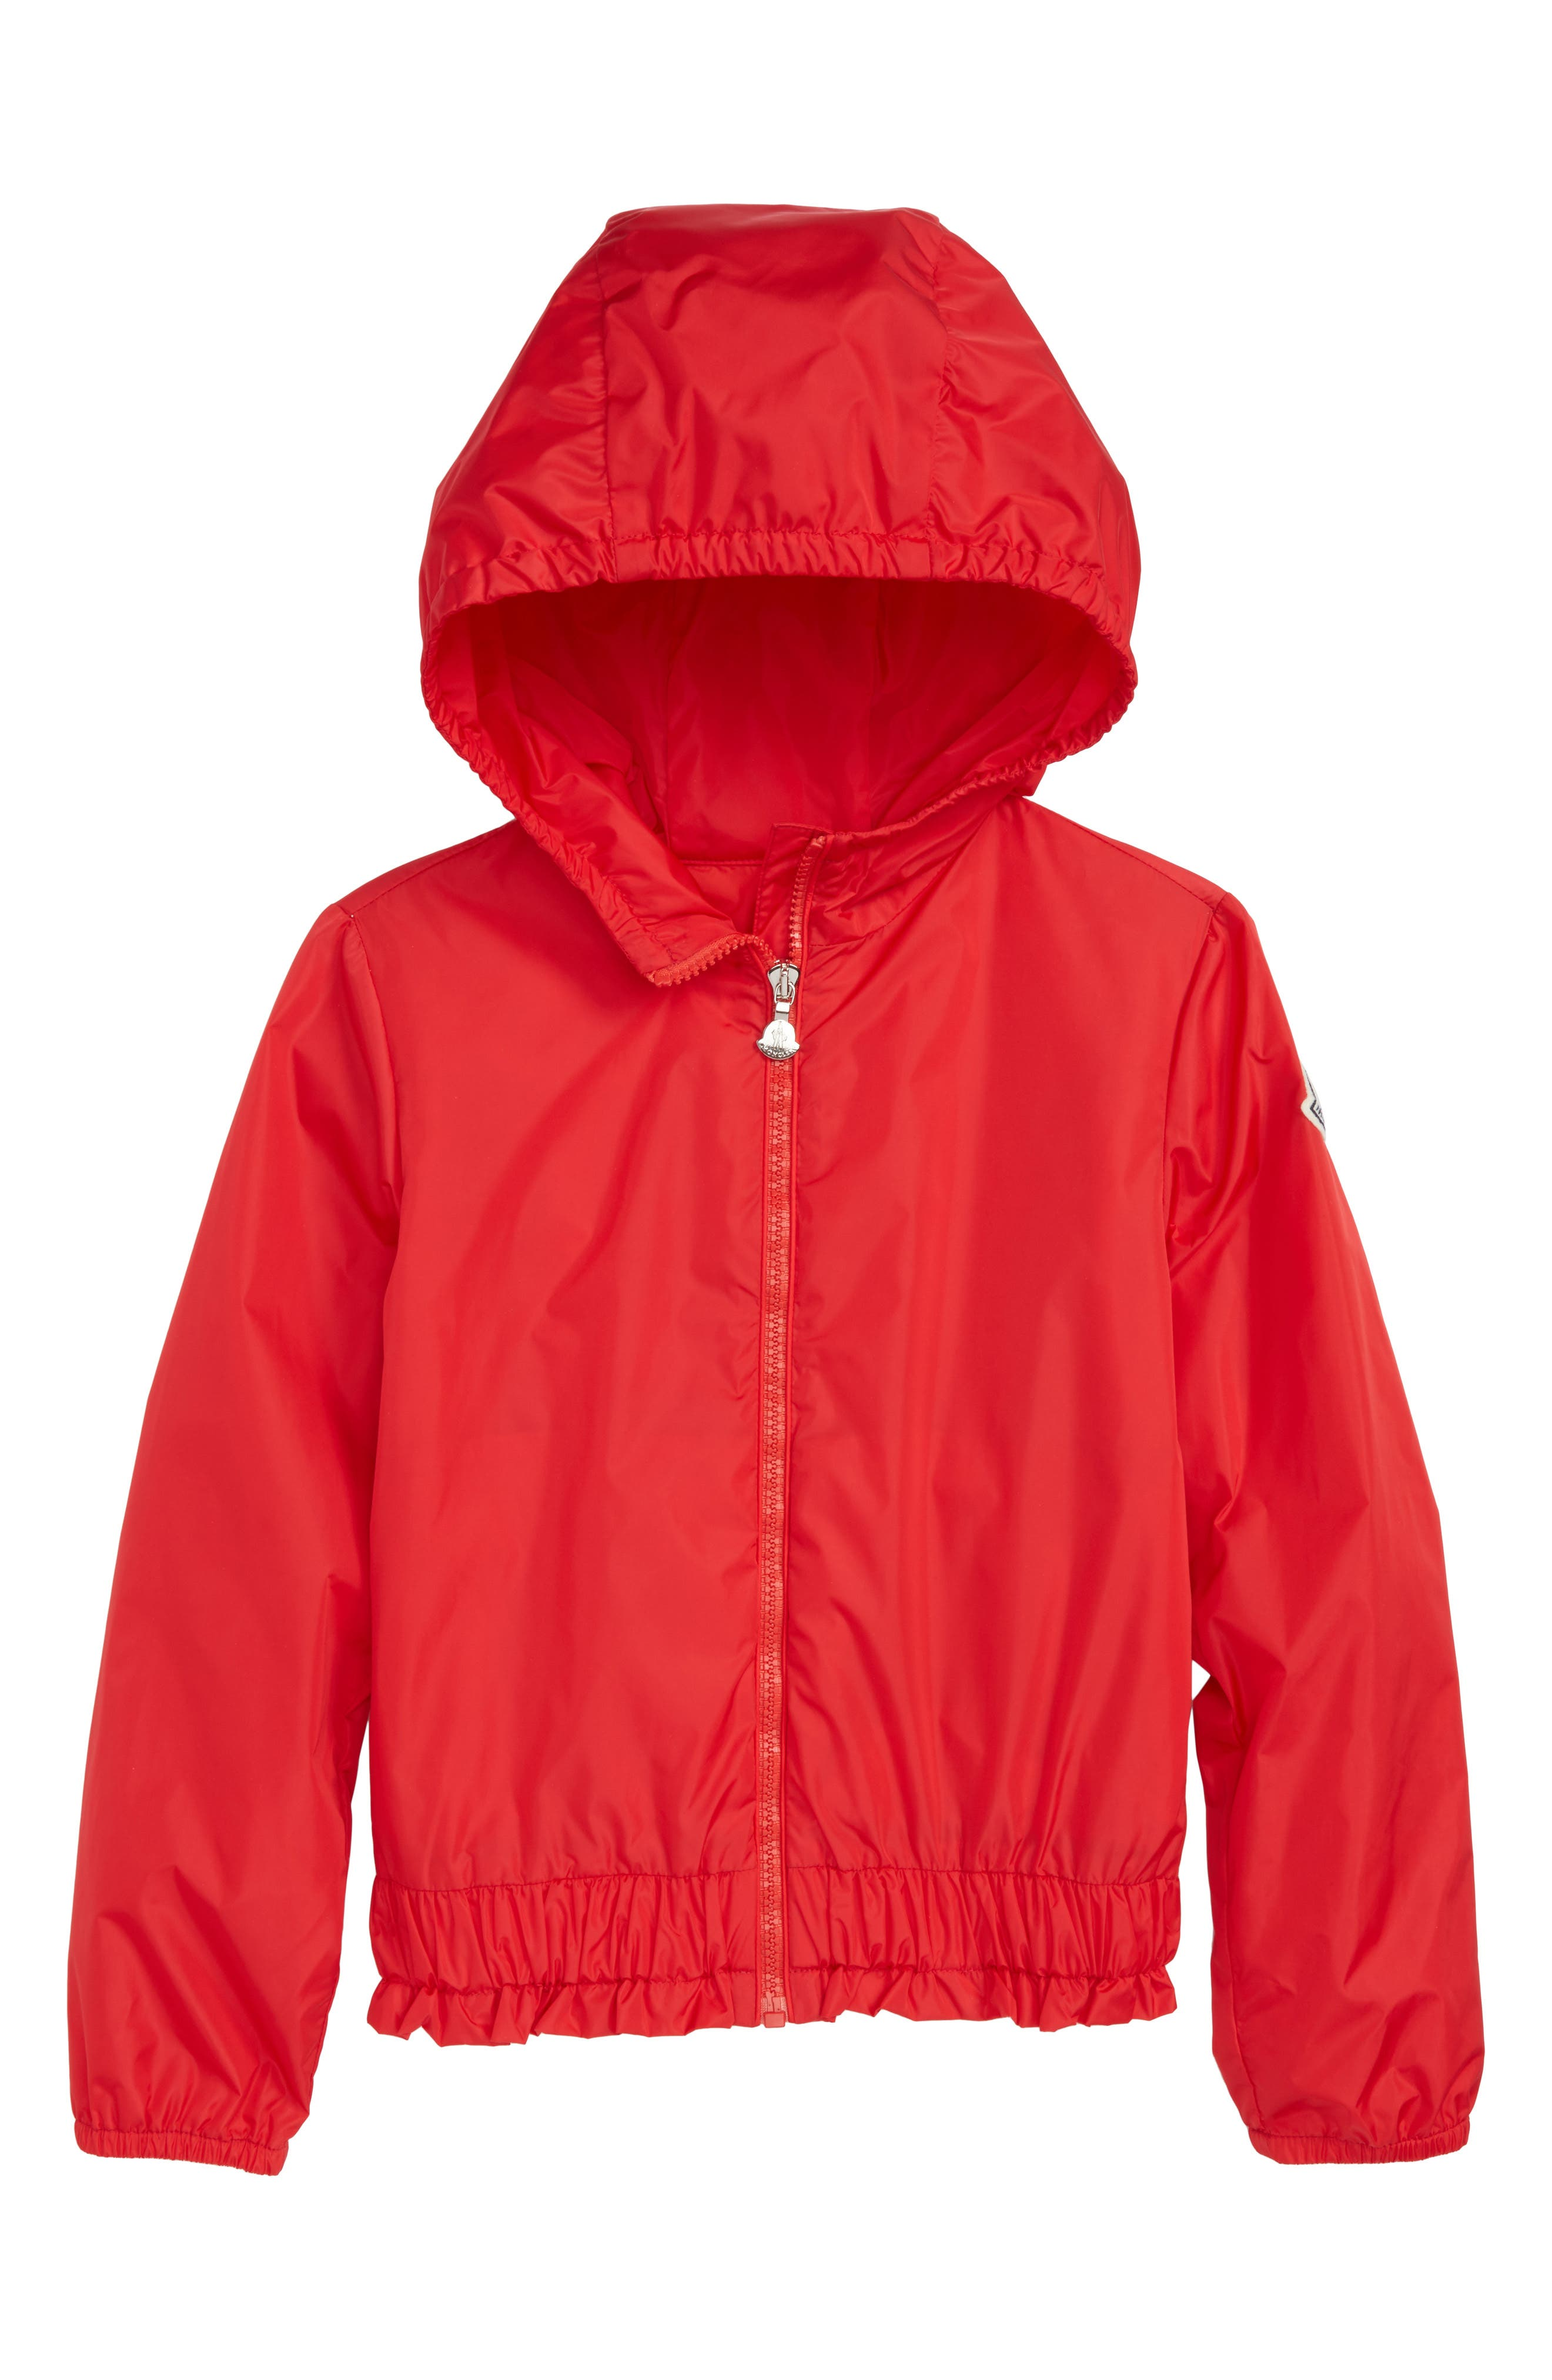 MONCLER, Erina Water Resistant Hooded Windbreaker, Main thumbnail 1, color, RED